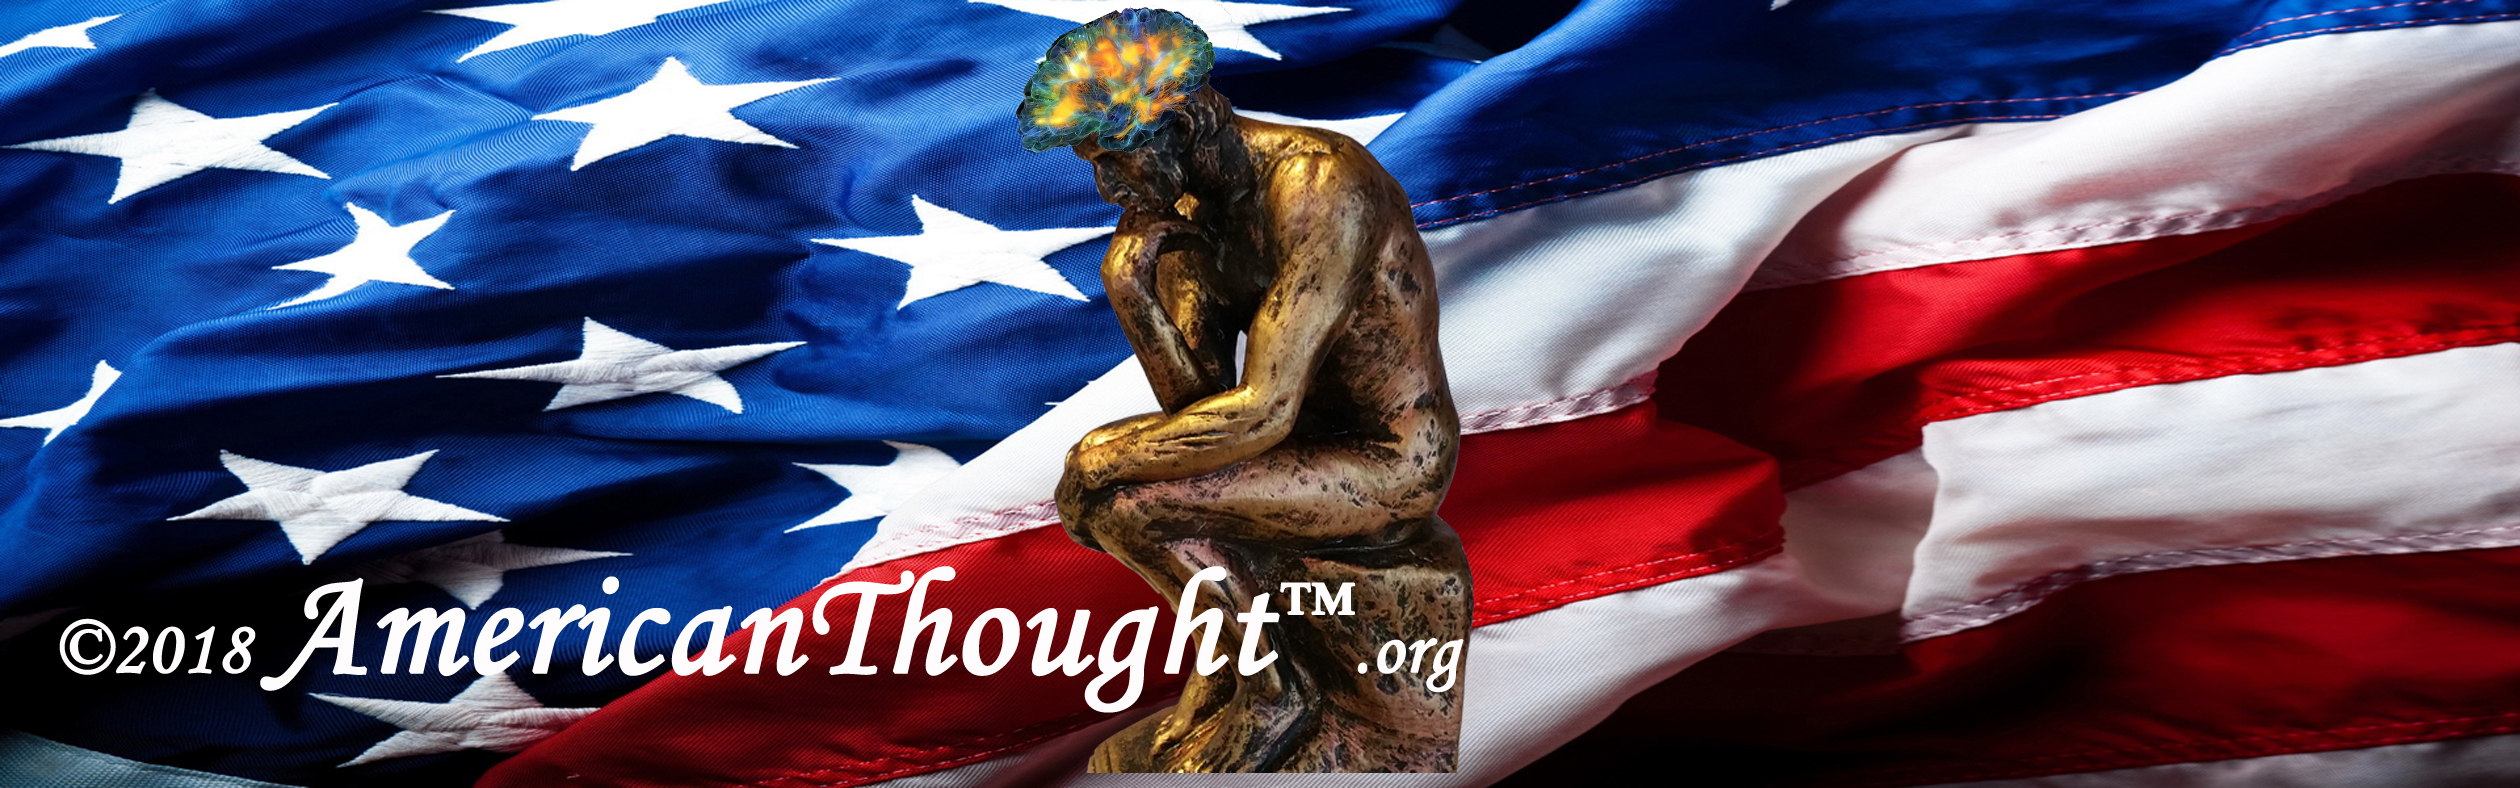 AmericanThought.org